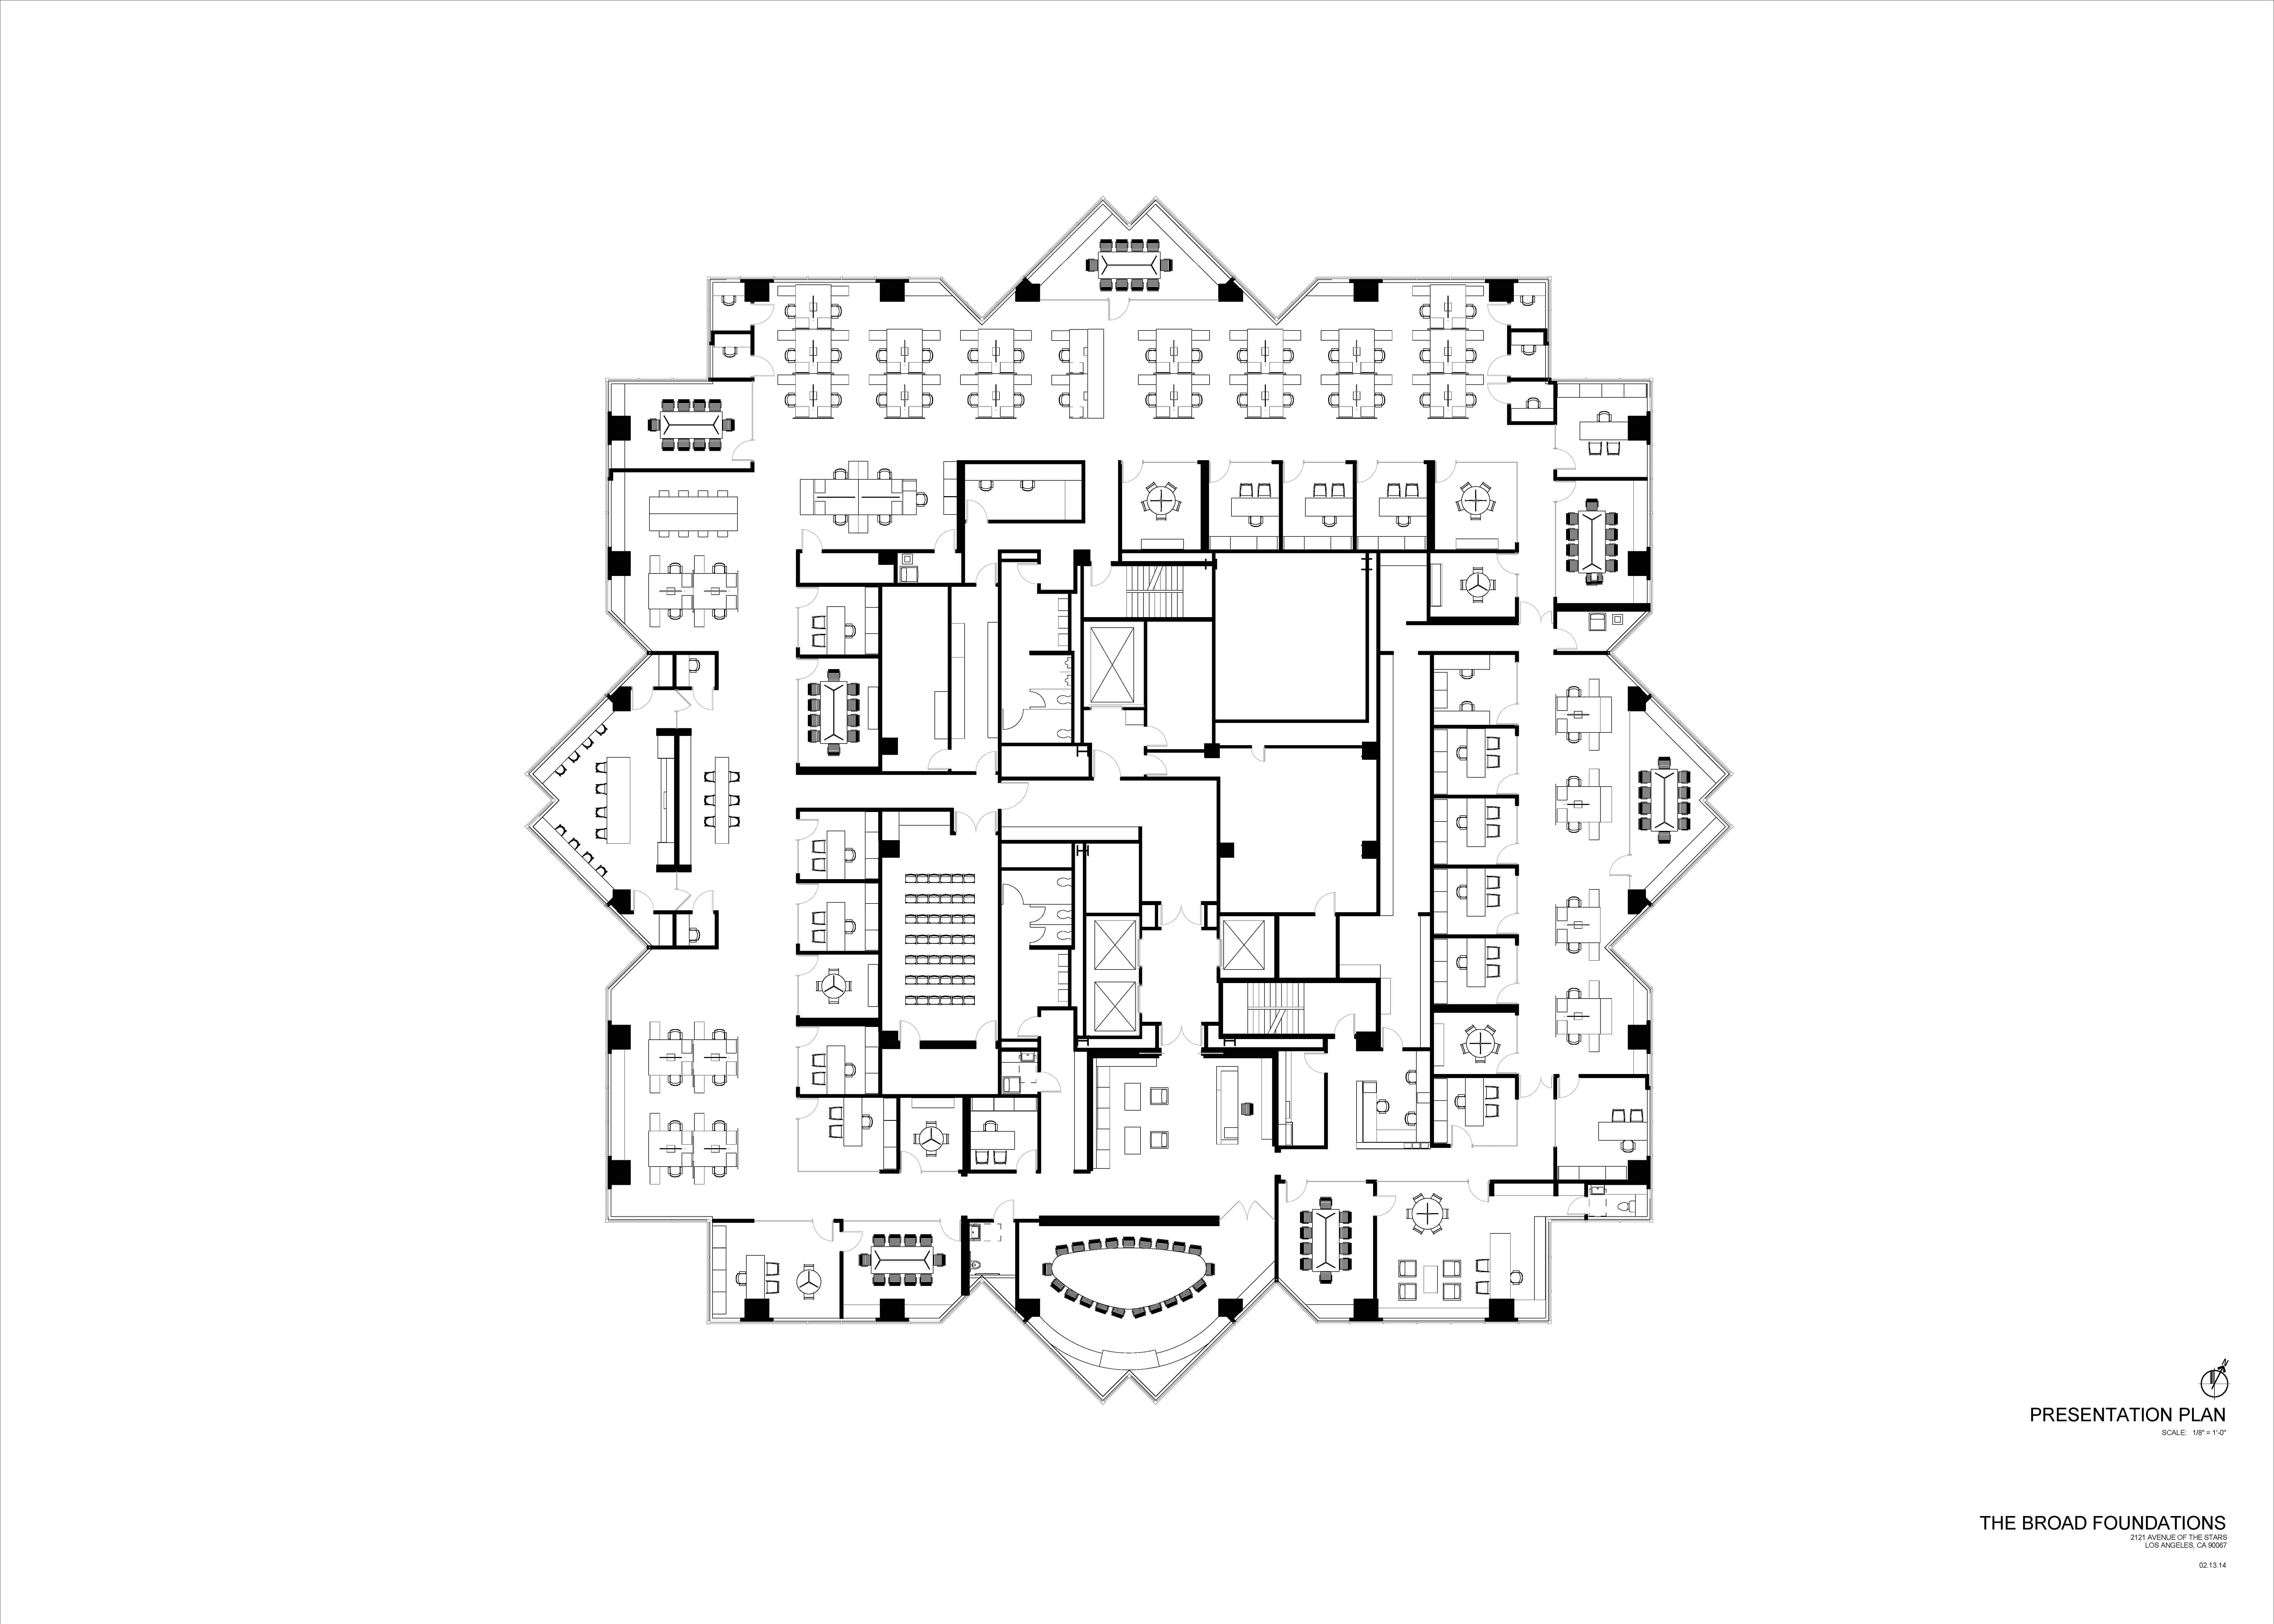 1348_Broad Foundation_140317 Floor Plan_no text